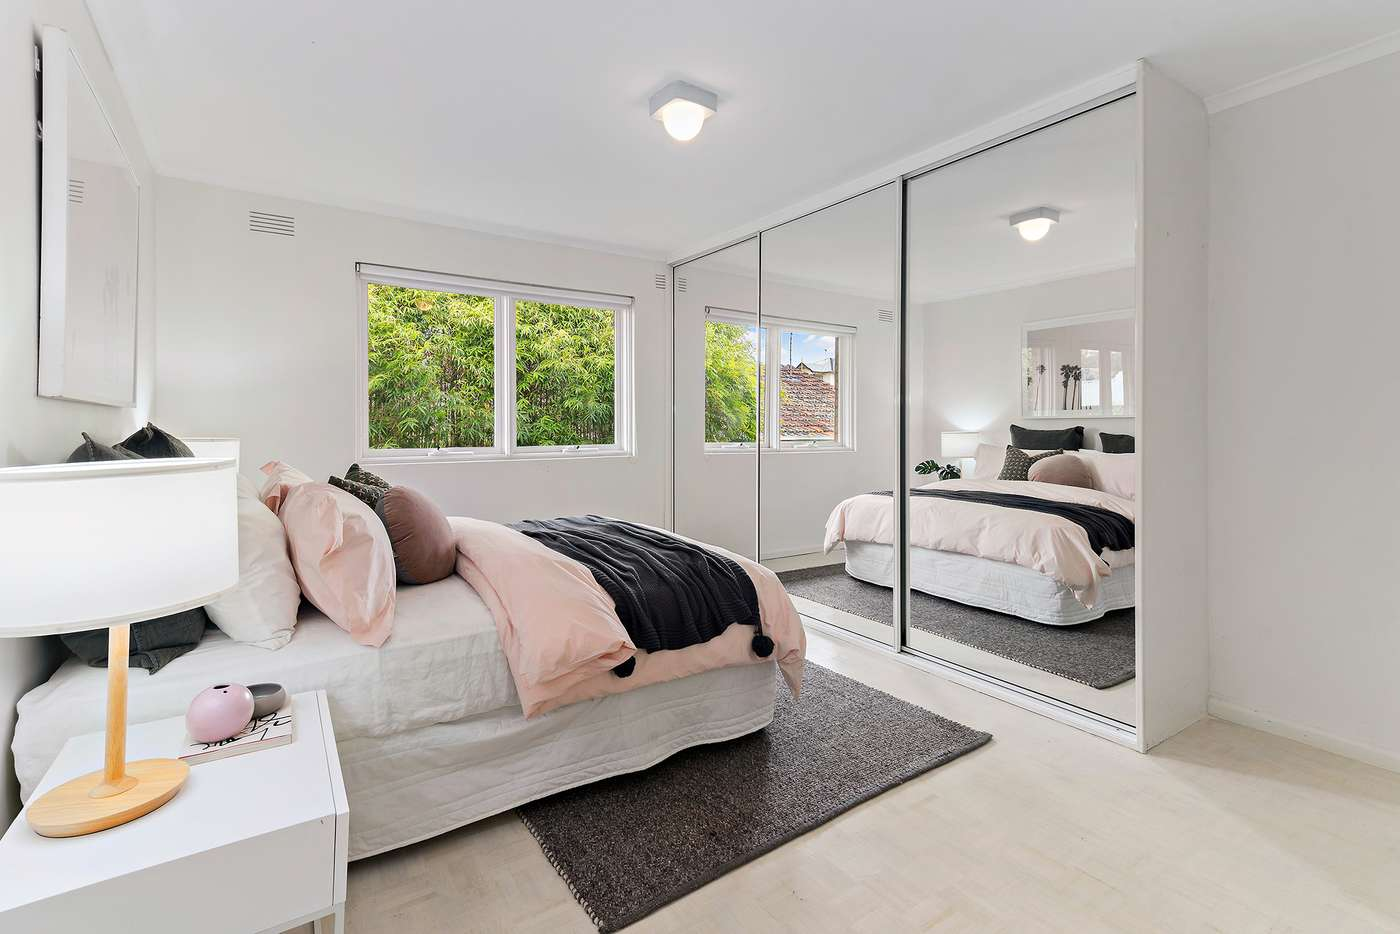 Fifth view of Homely apartment listing, 13/45 Abbott Street, Sandringham VIC 3191